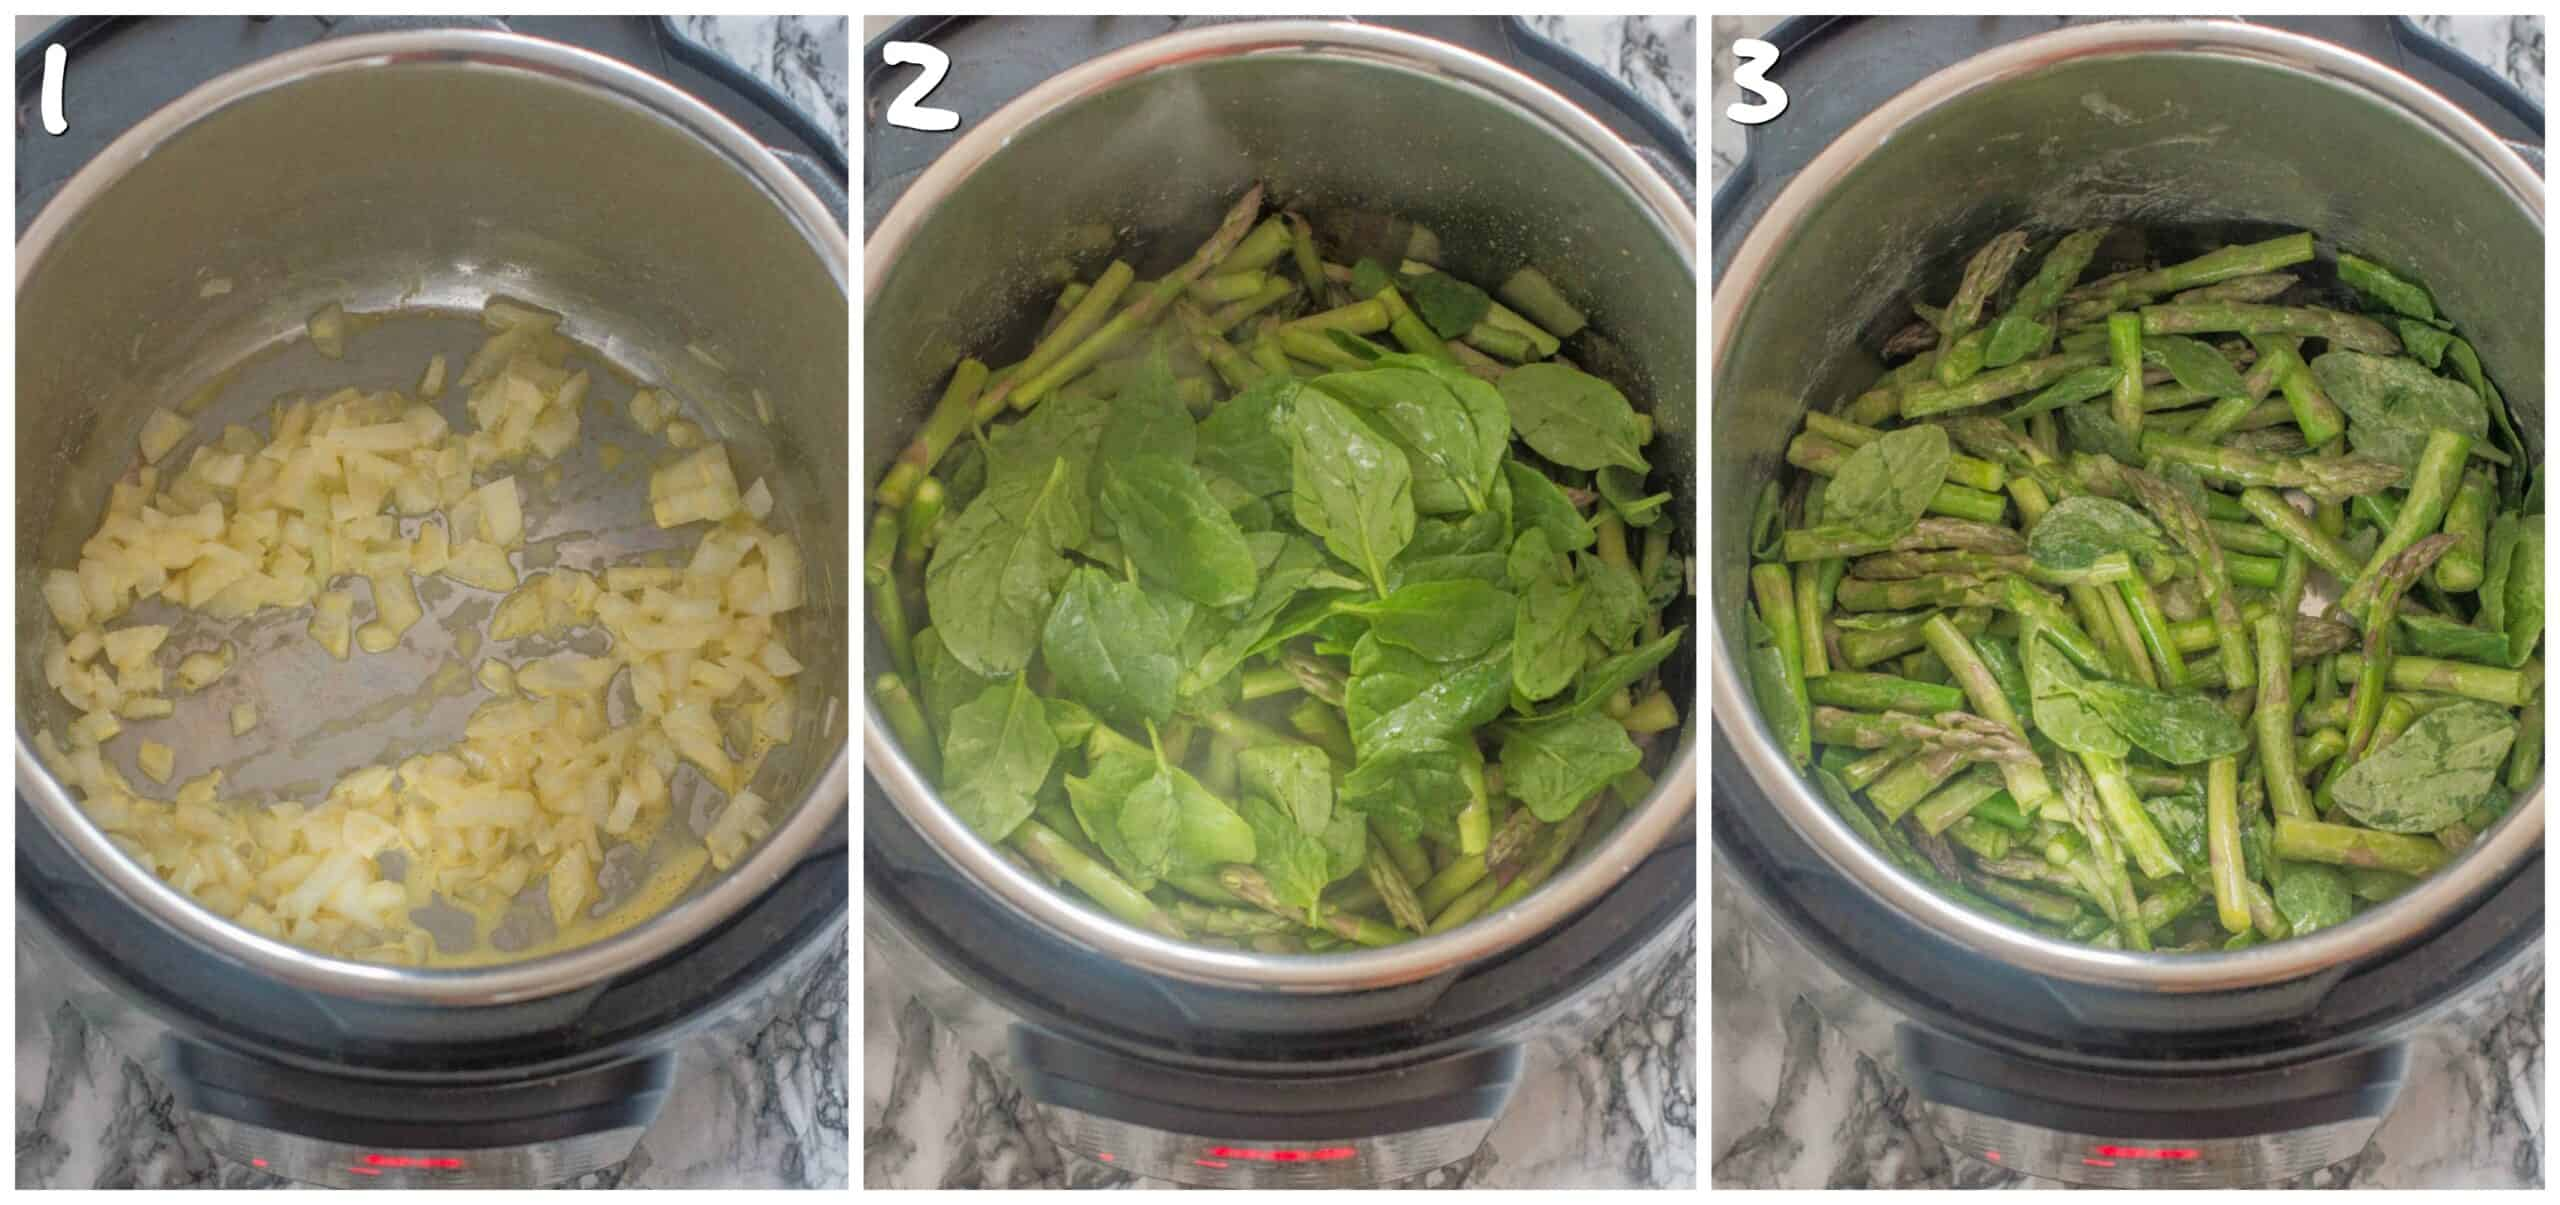 steps 1-3 sauteing and adding the vegetables